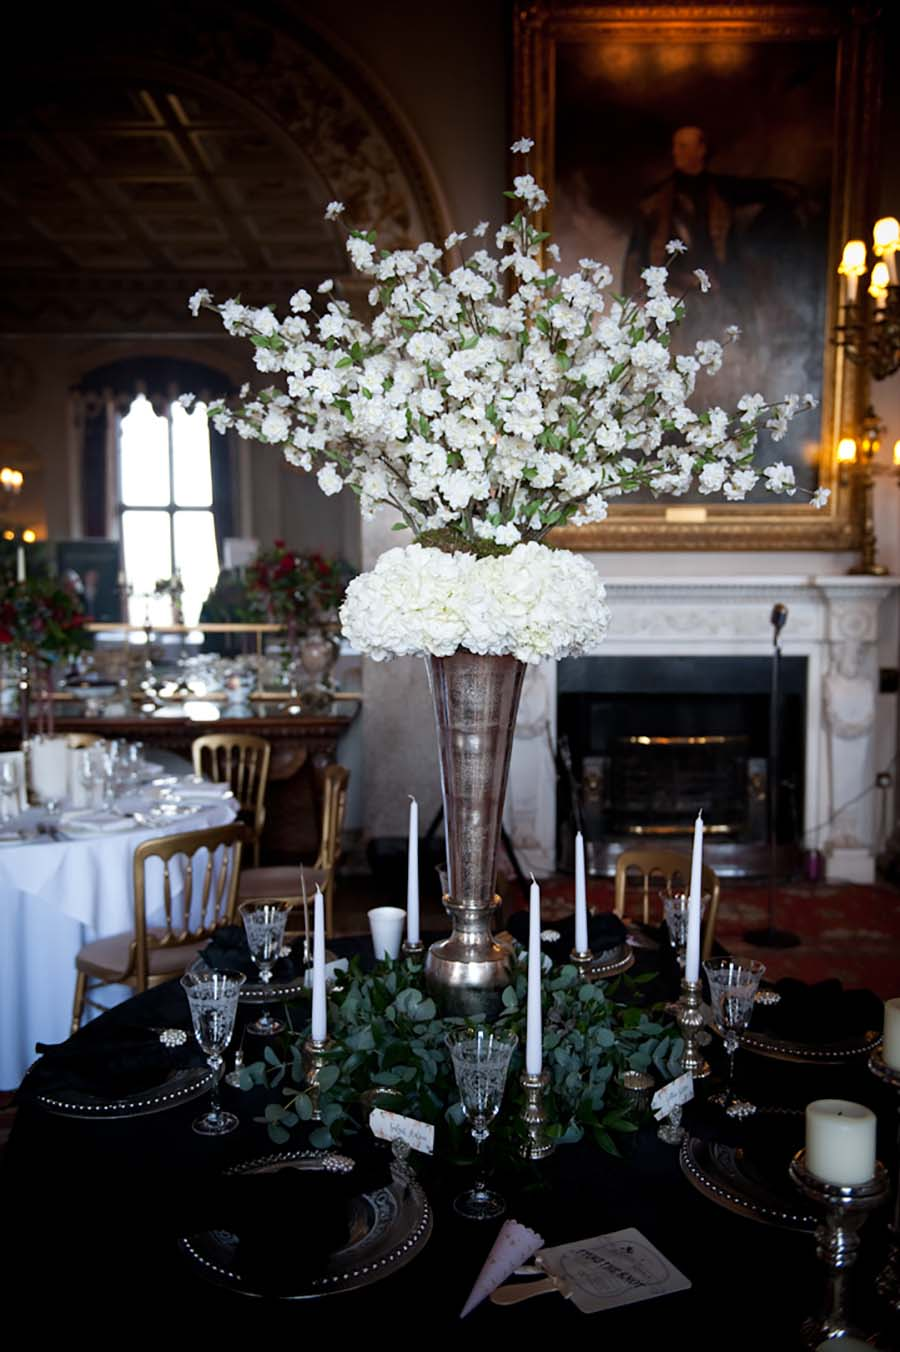 Buckinghams-at-belvoir-castle-wedding-fair-rachael-connerton-photography-122